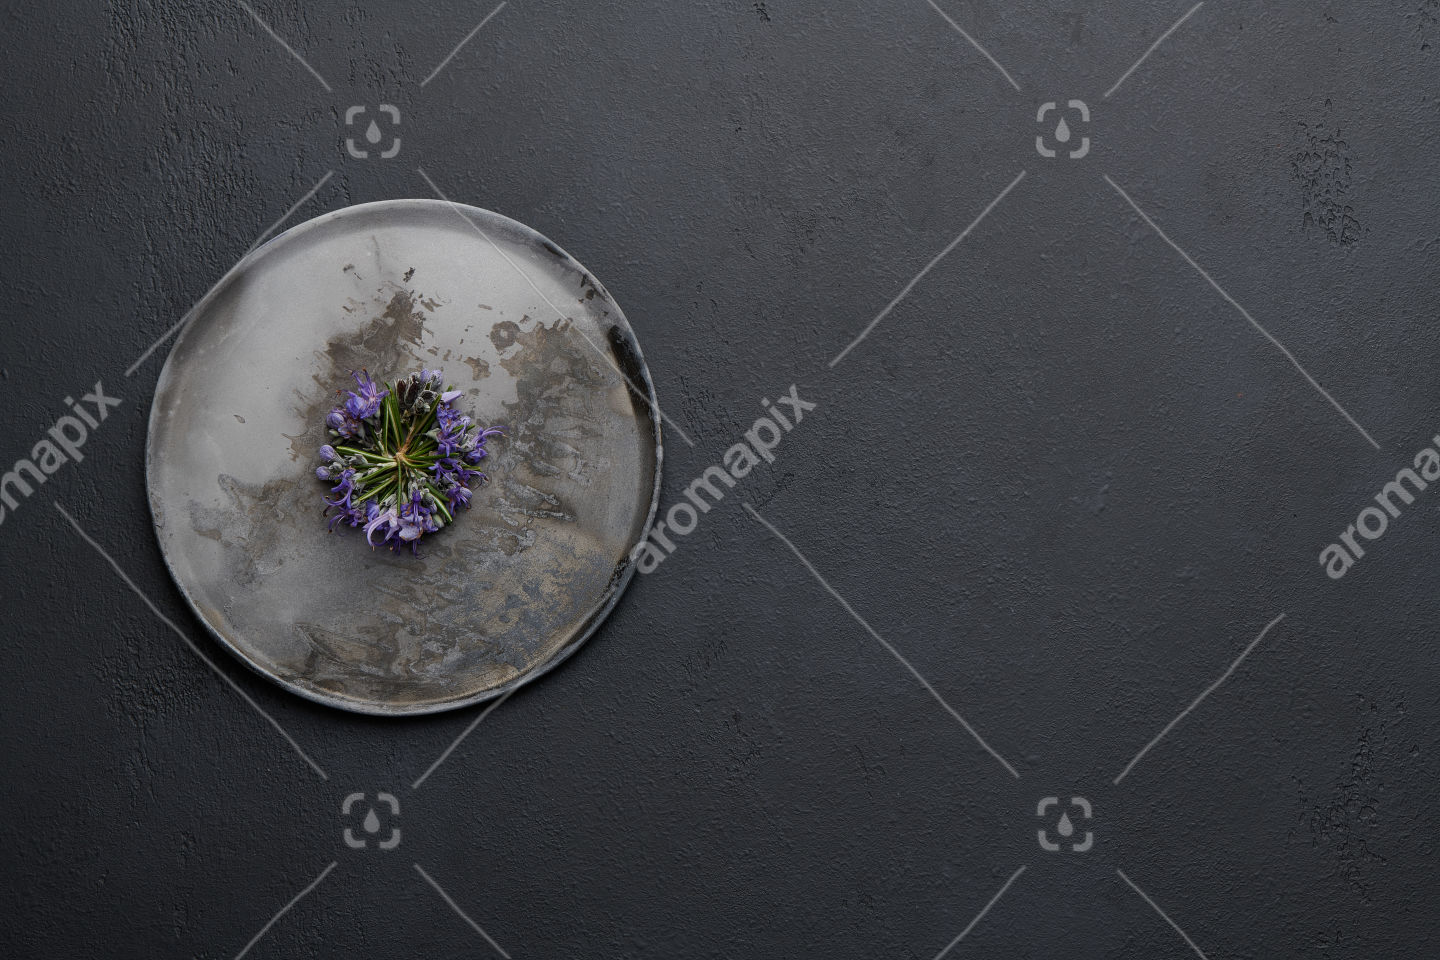 Rosemary flowers on a ceramic plate on black